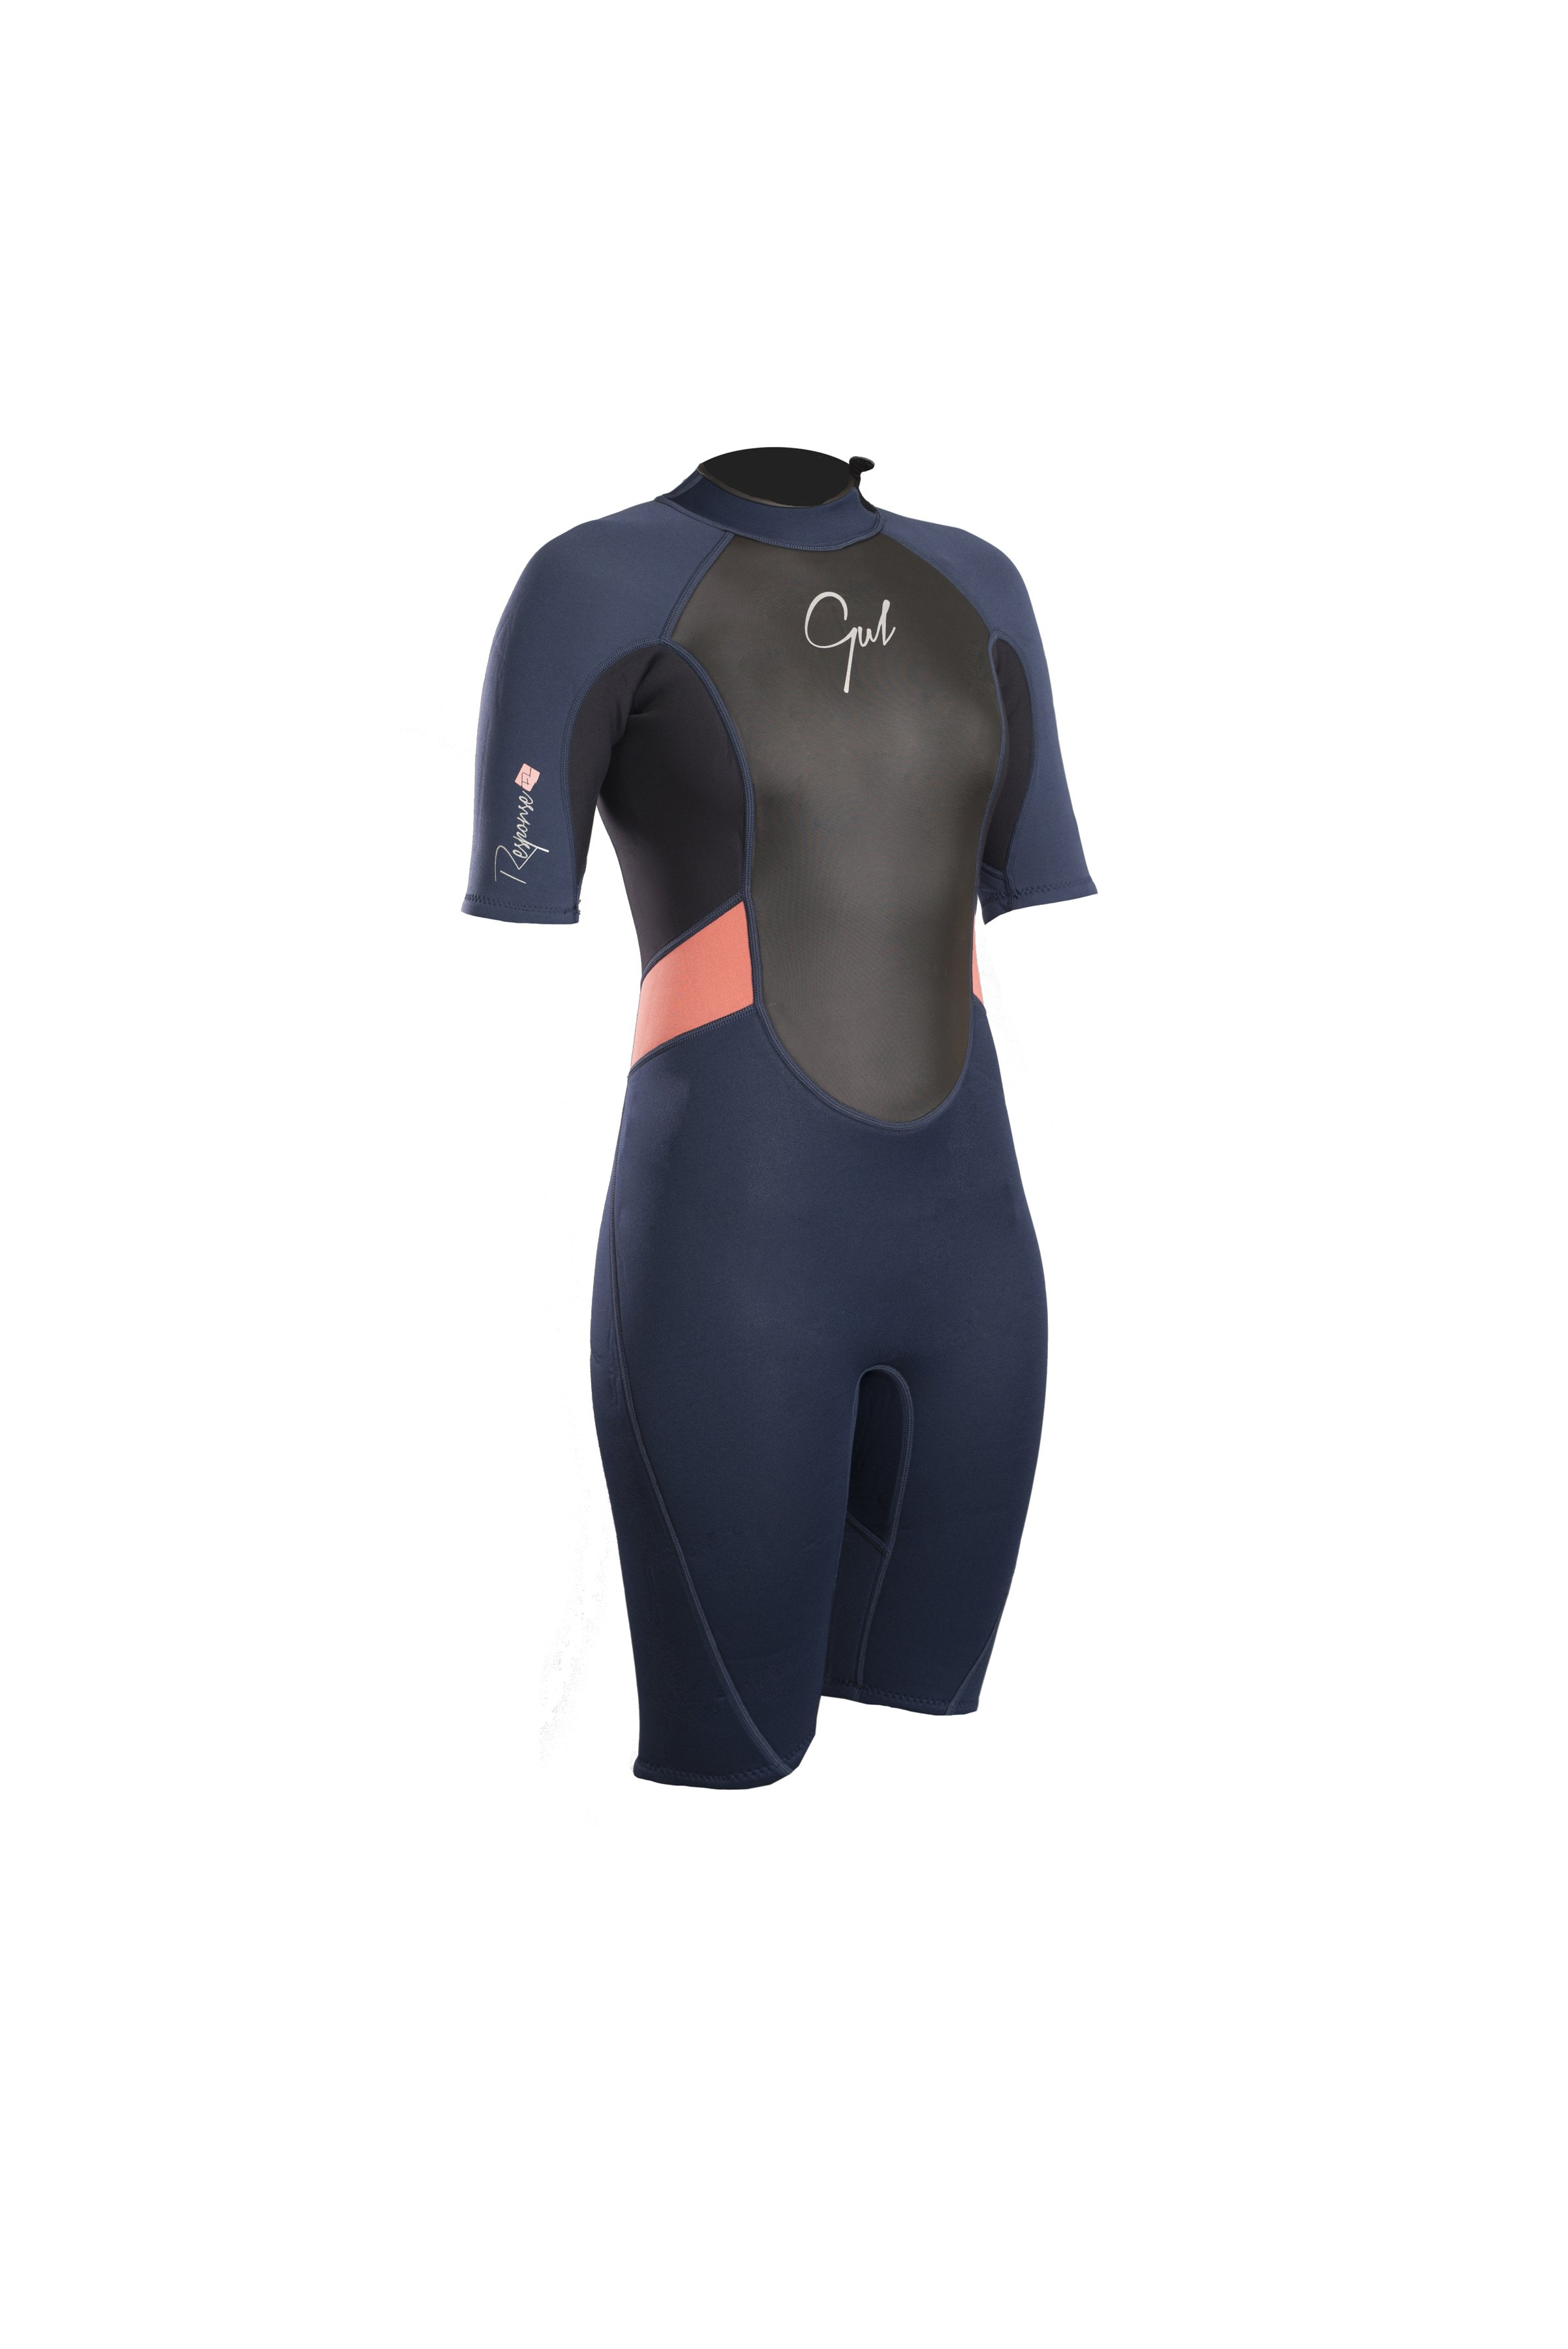 Gul Response Ladies 3/2mm Fl Shorti Wetsuit   Re3318-B4